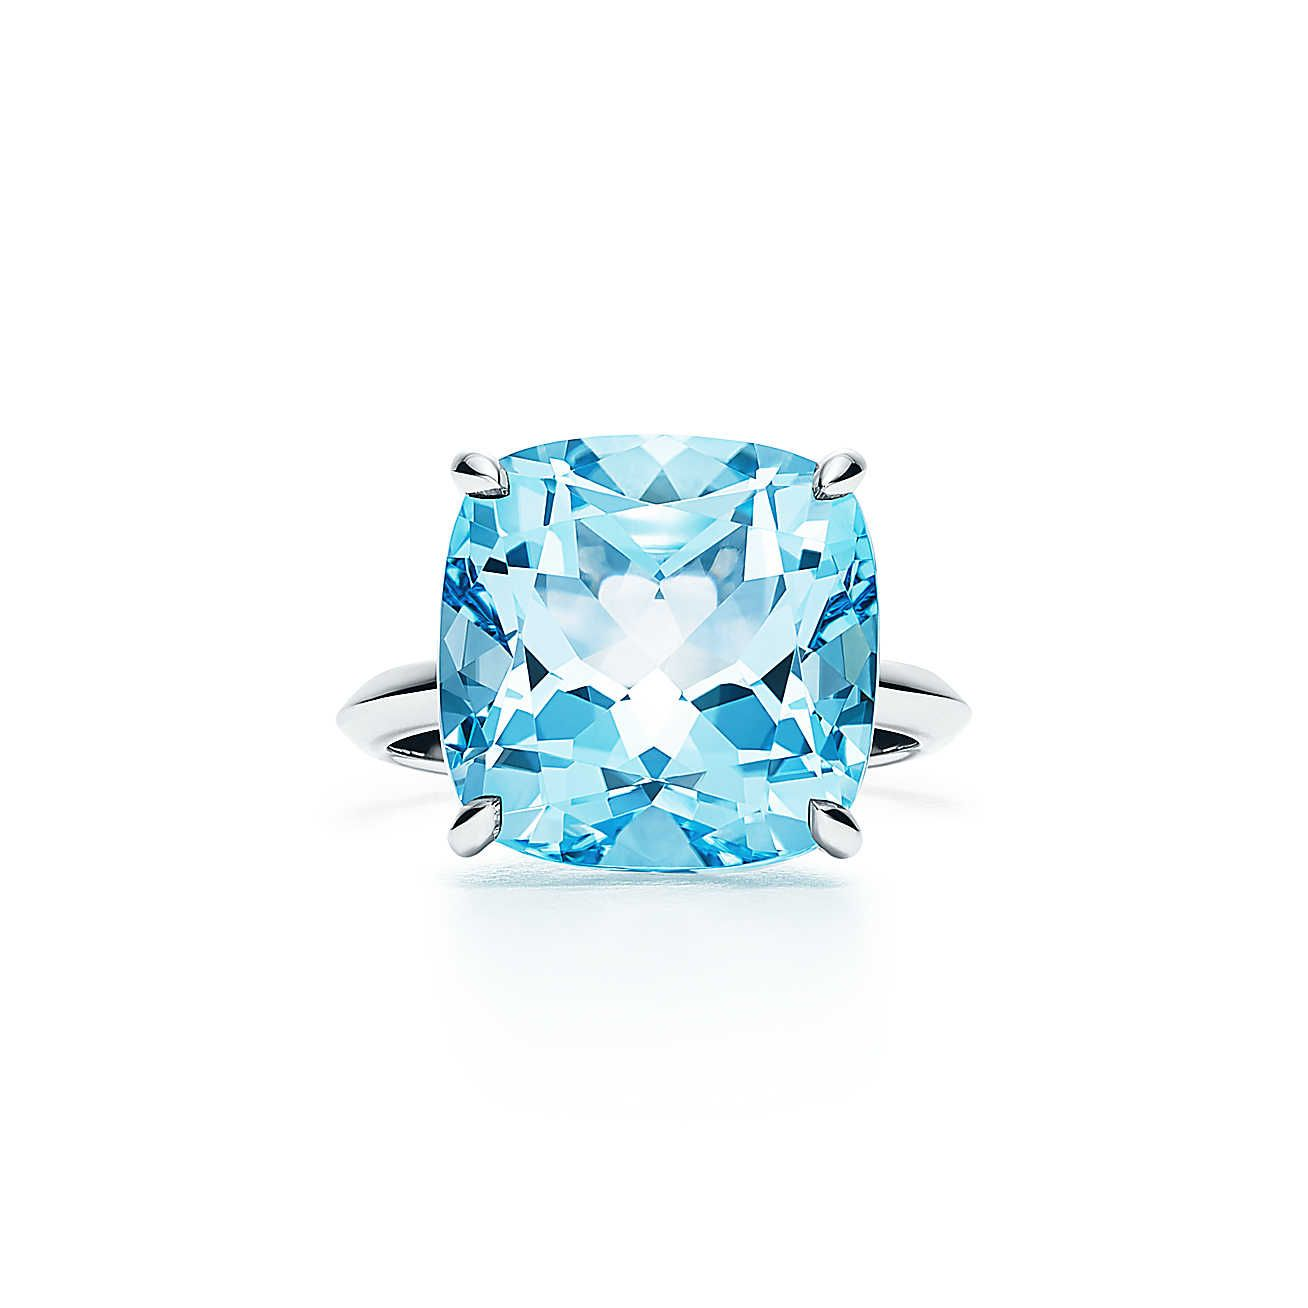 octagon blue image diamond ring engagement rings product topaz white gold and